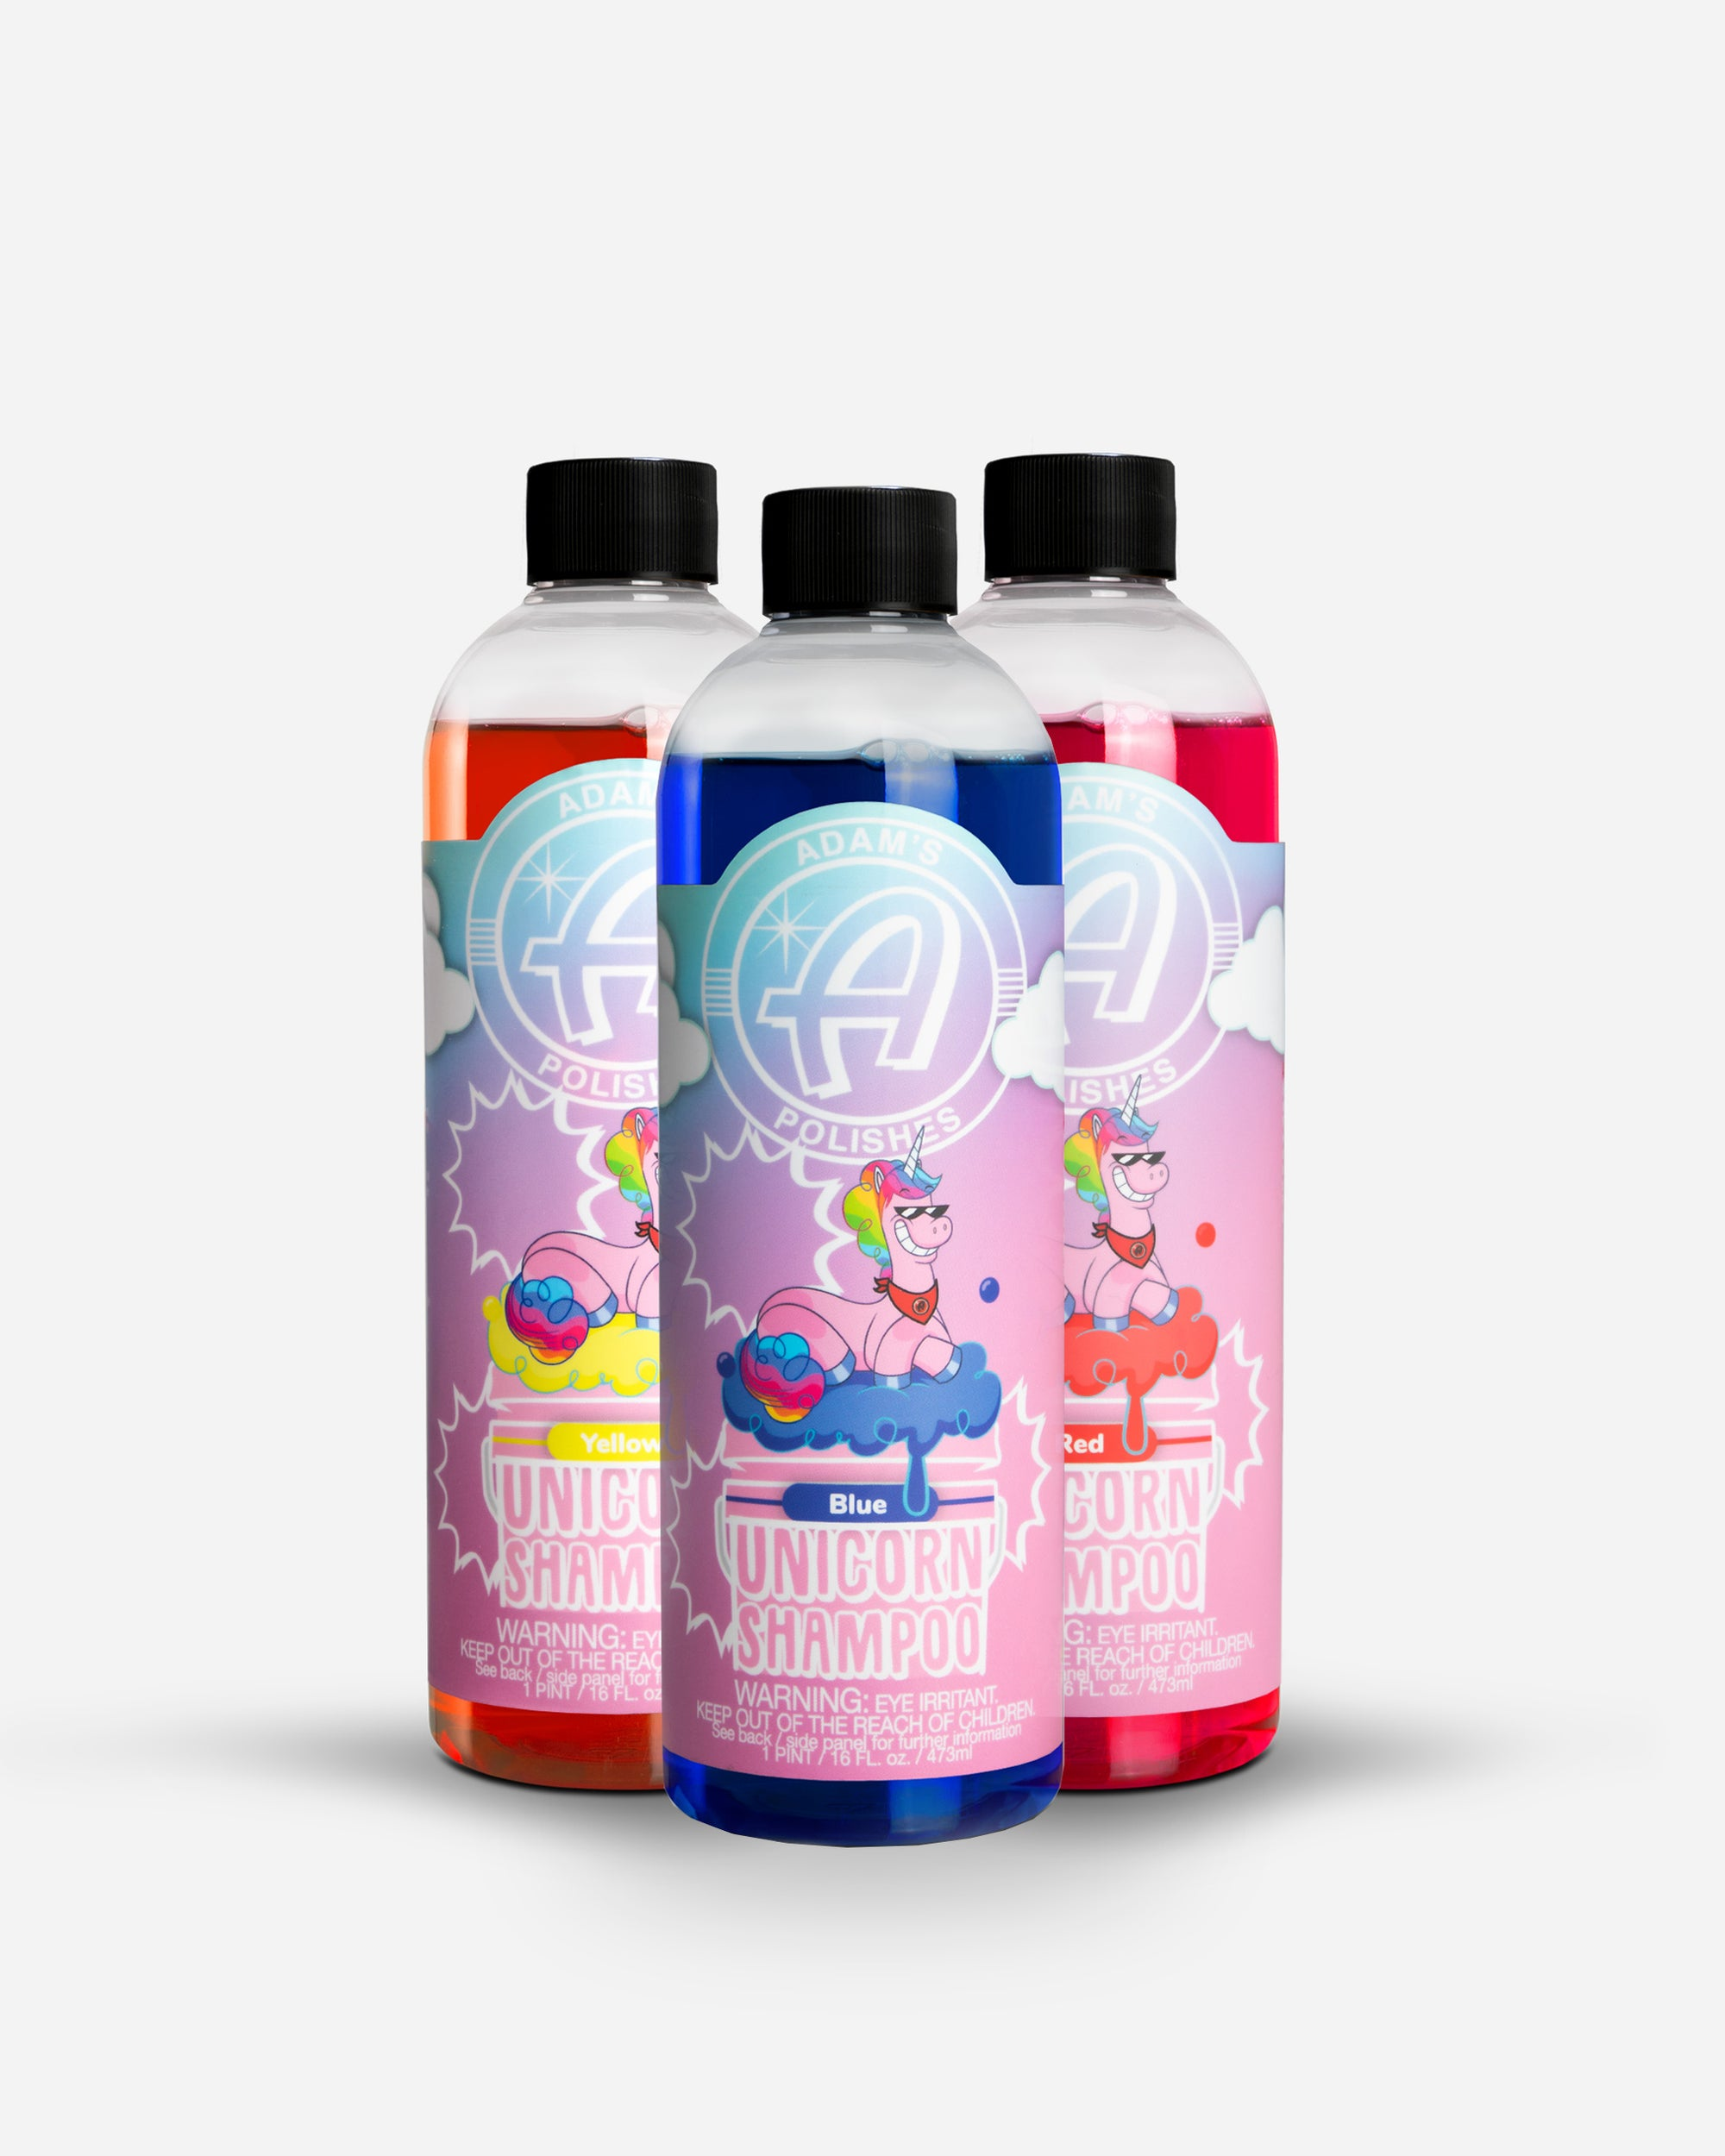 Adam's Unicorn Shampoo Kit